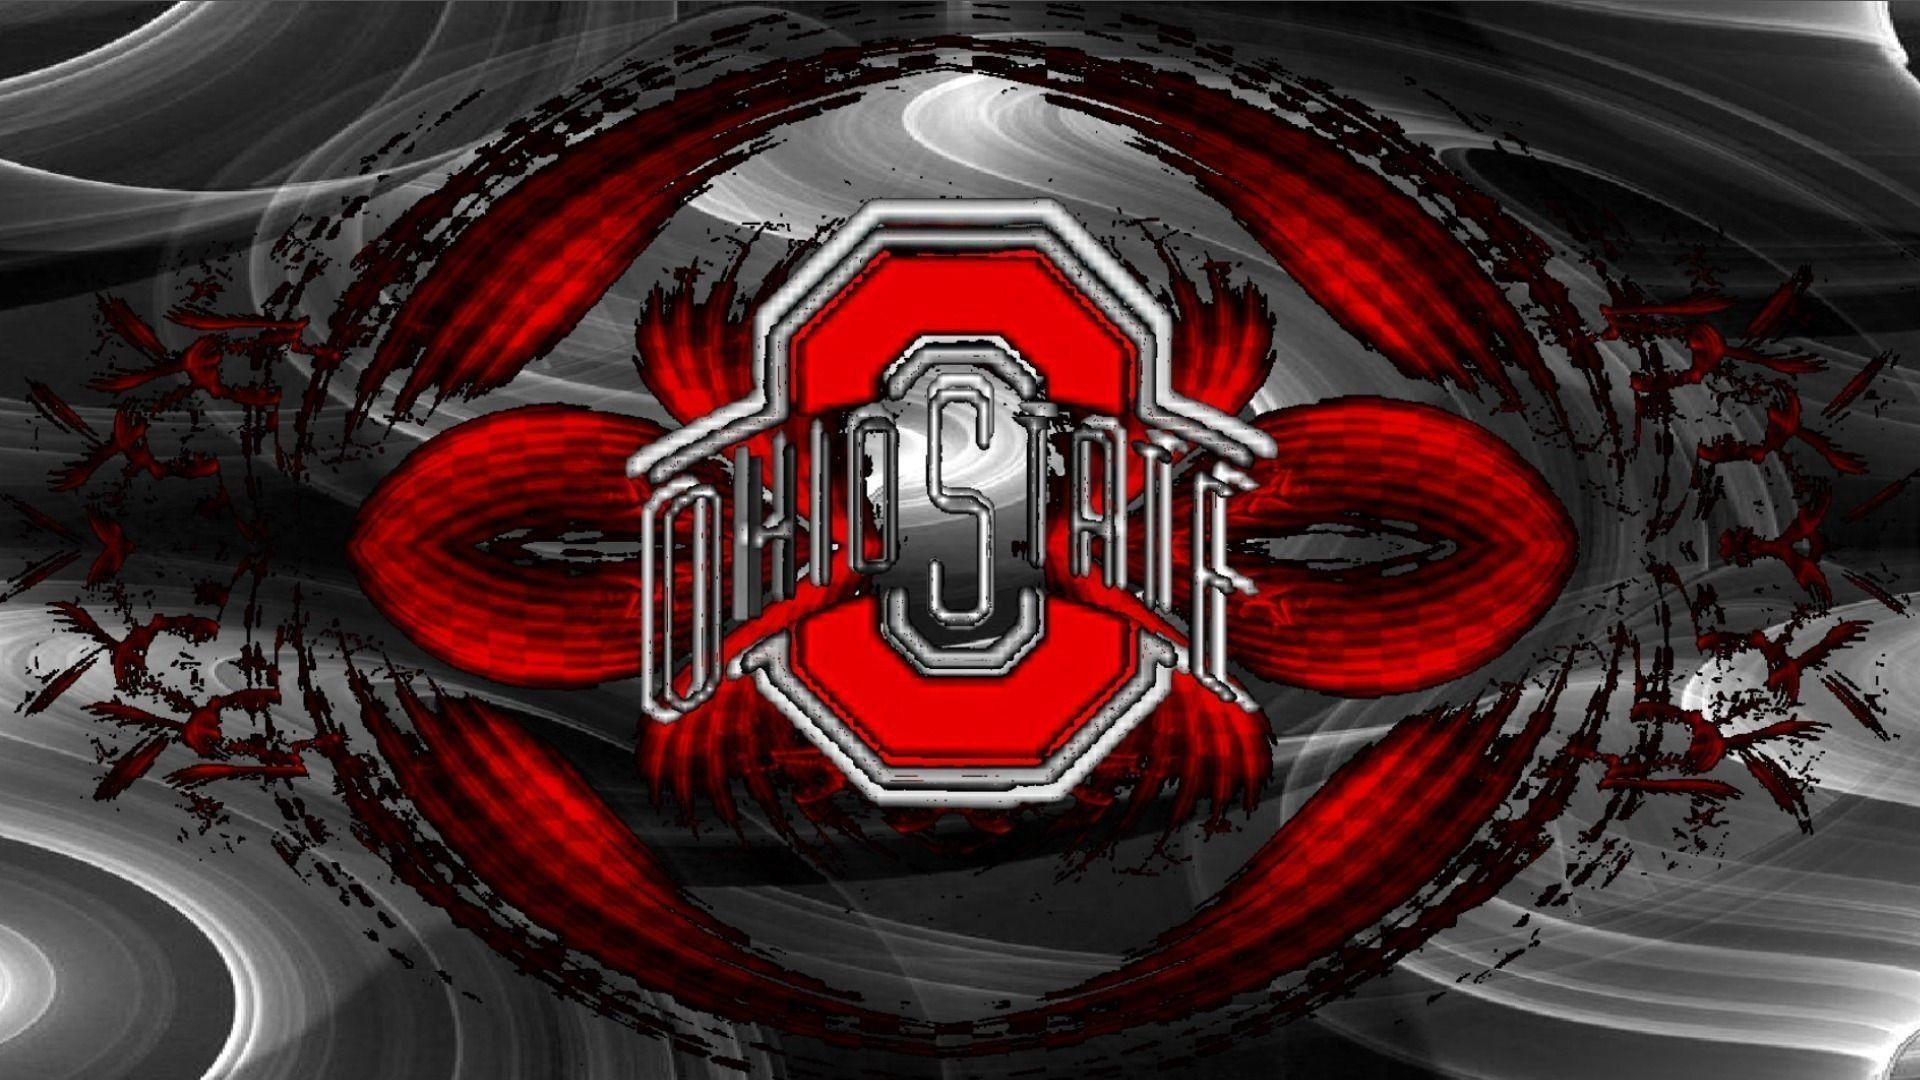 Ohio State Football Wallpaper And Screensavers HD Wallpapers .